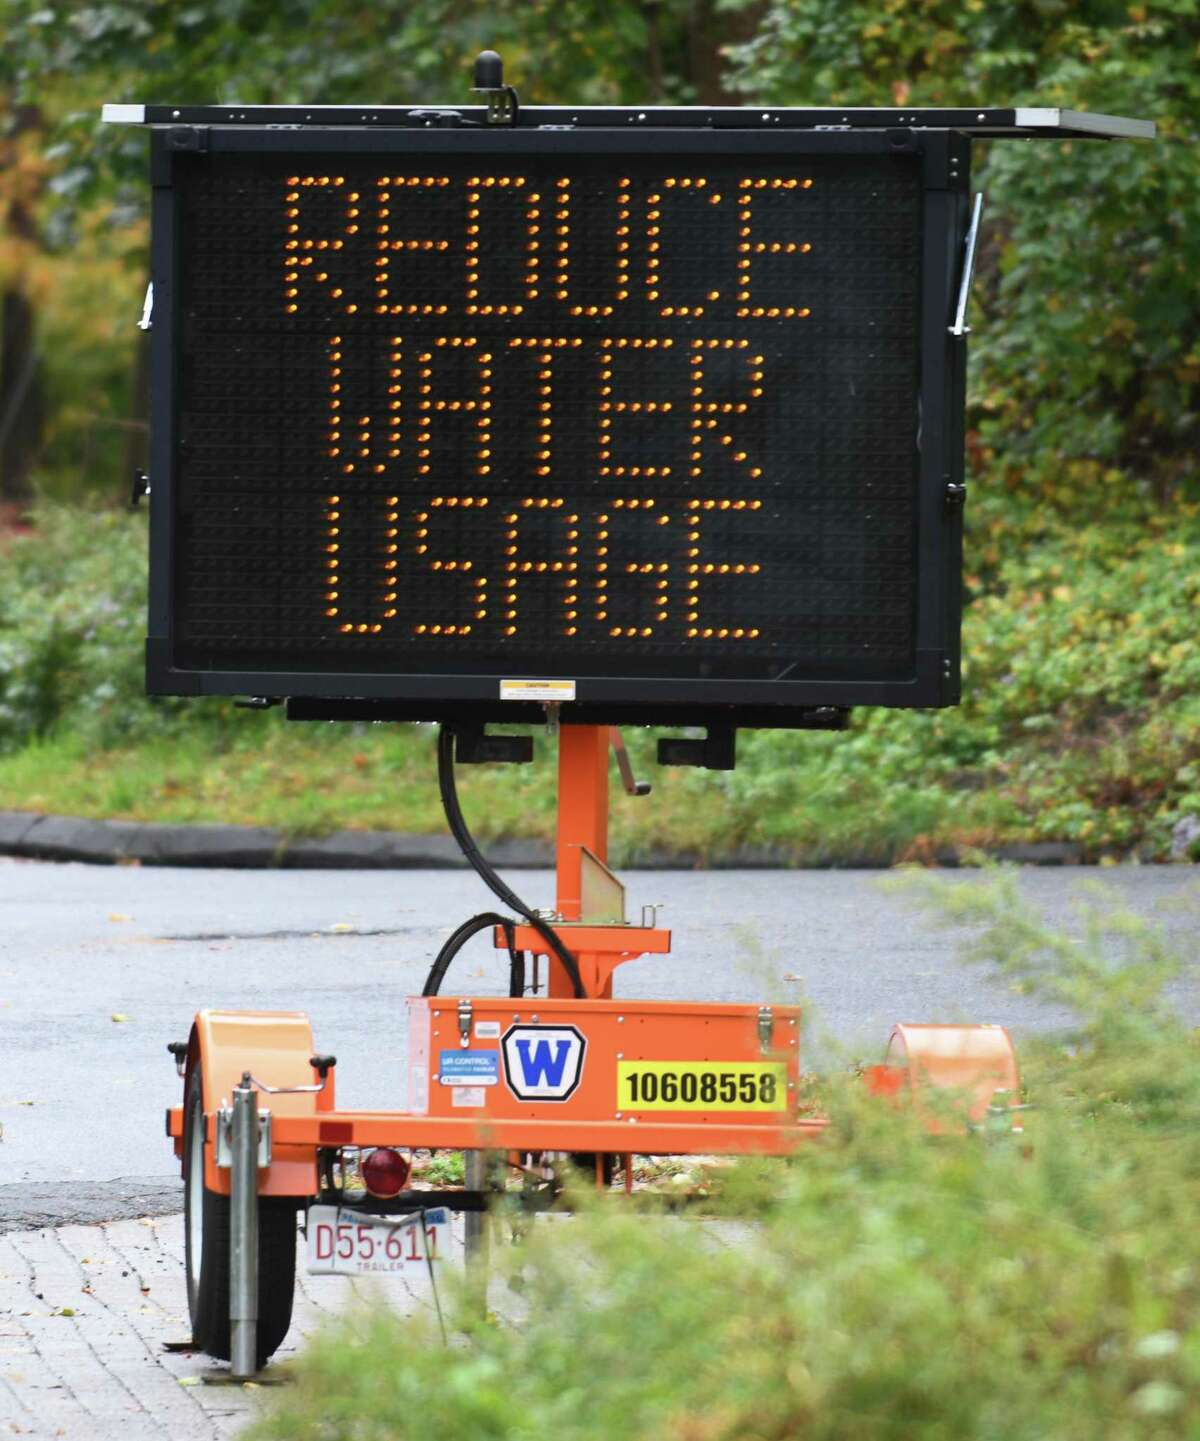 A sign urges residents to reduce water usage near Putnam Reservoir in Greenwich, Conn. Monday, Oct. 12, 2020.